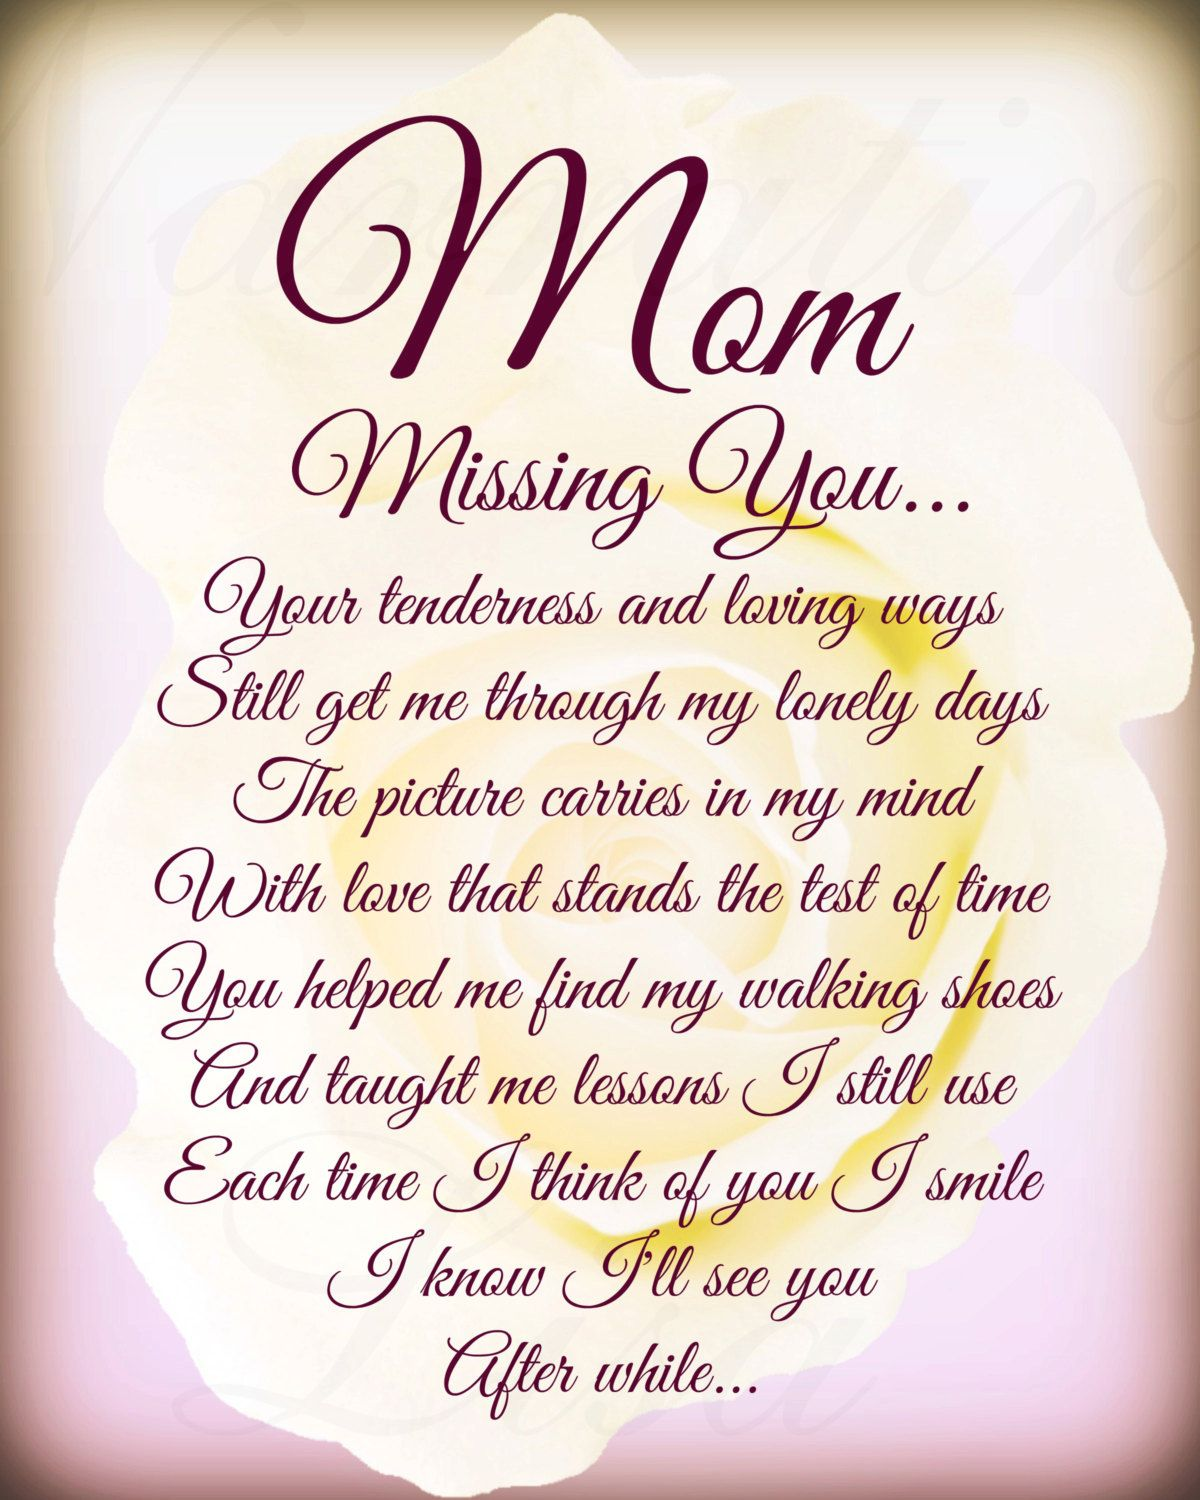 mum memorial poem | Mom Missing You In Loving Memory ...